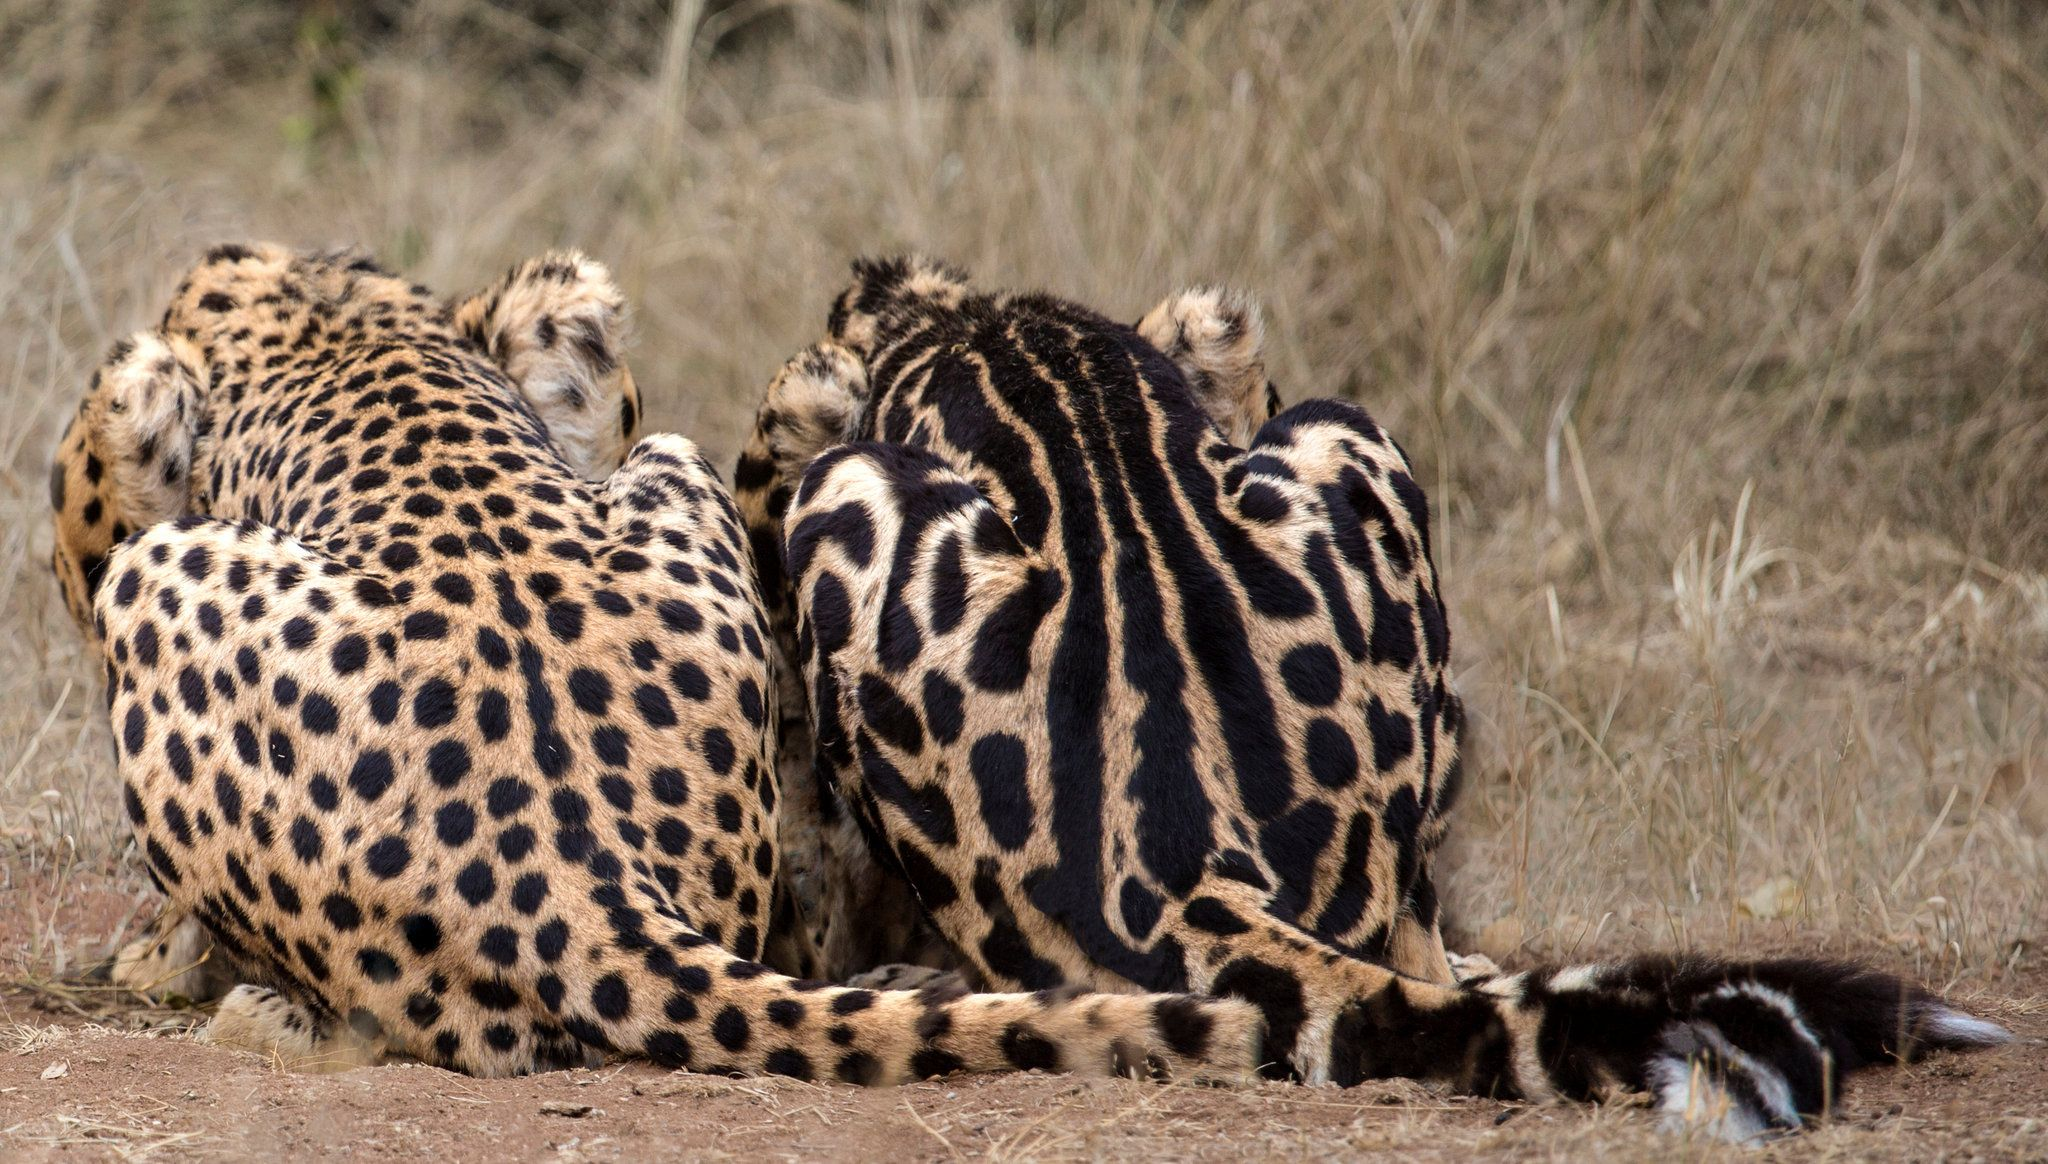 Cats' Stripes and Spots Are Tracked to a Gene (With images